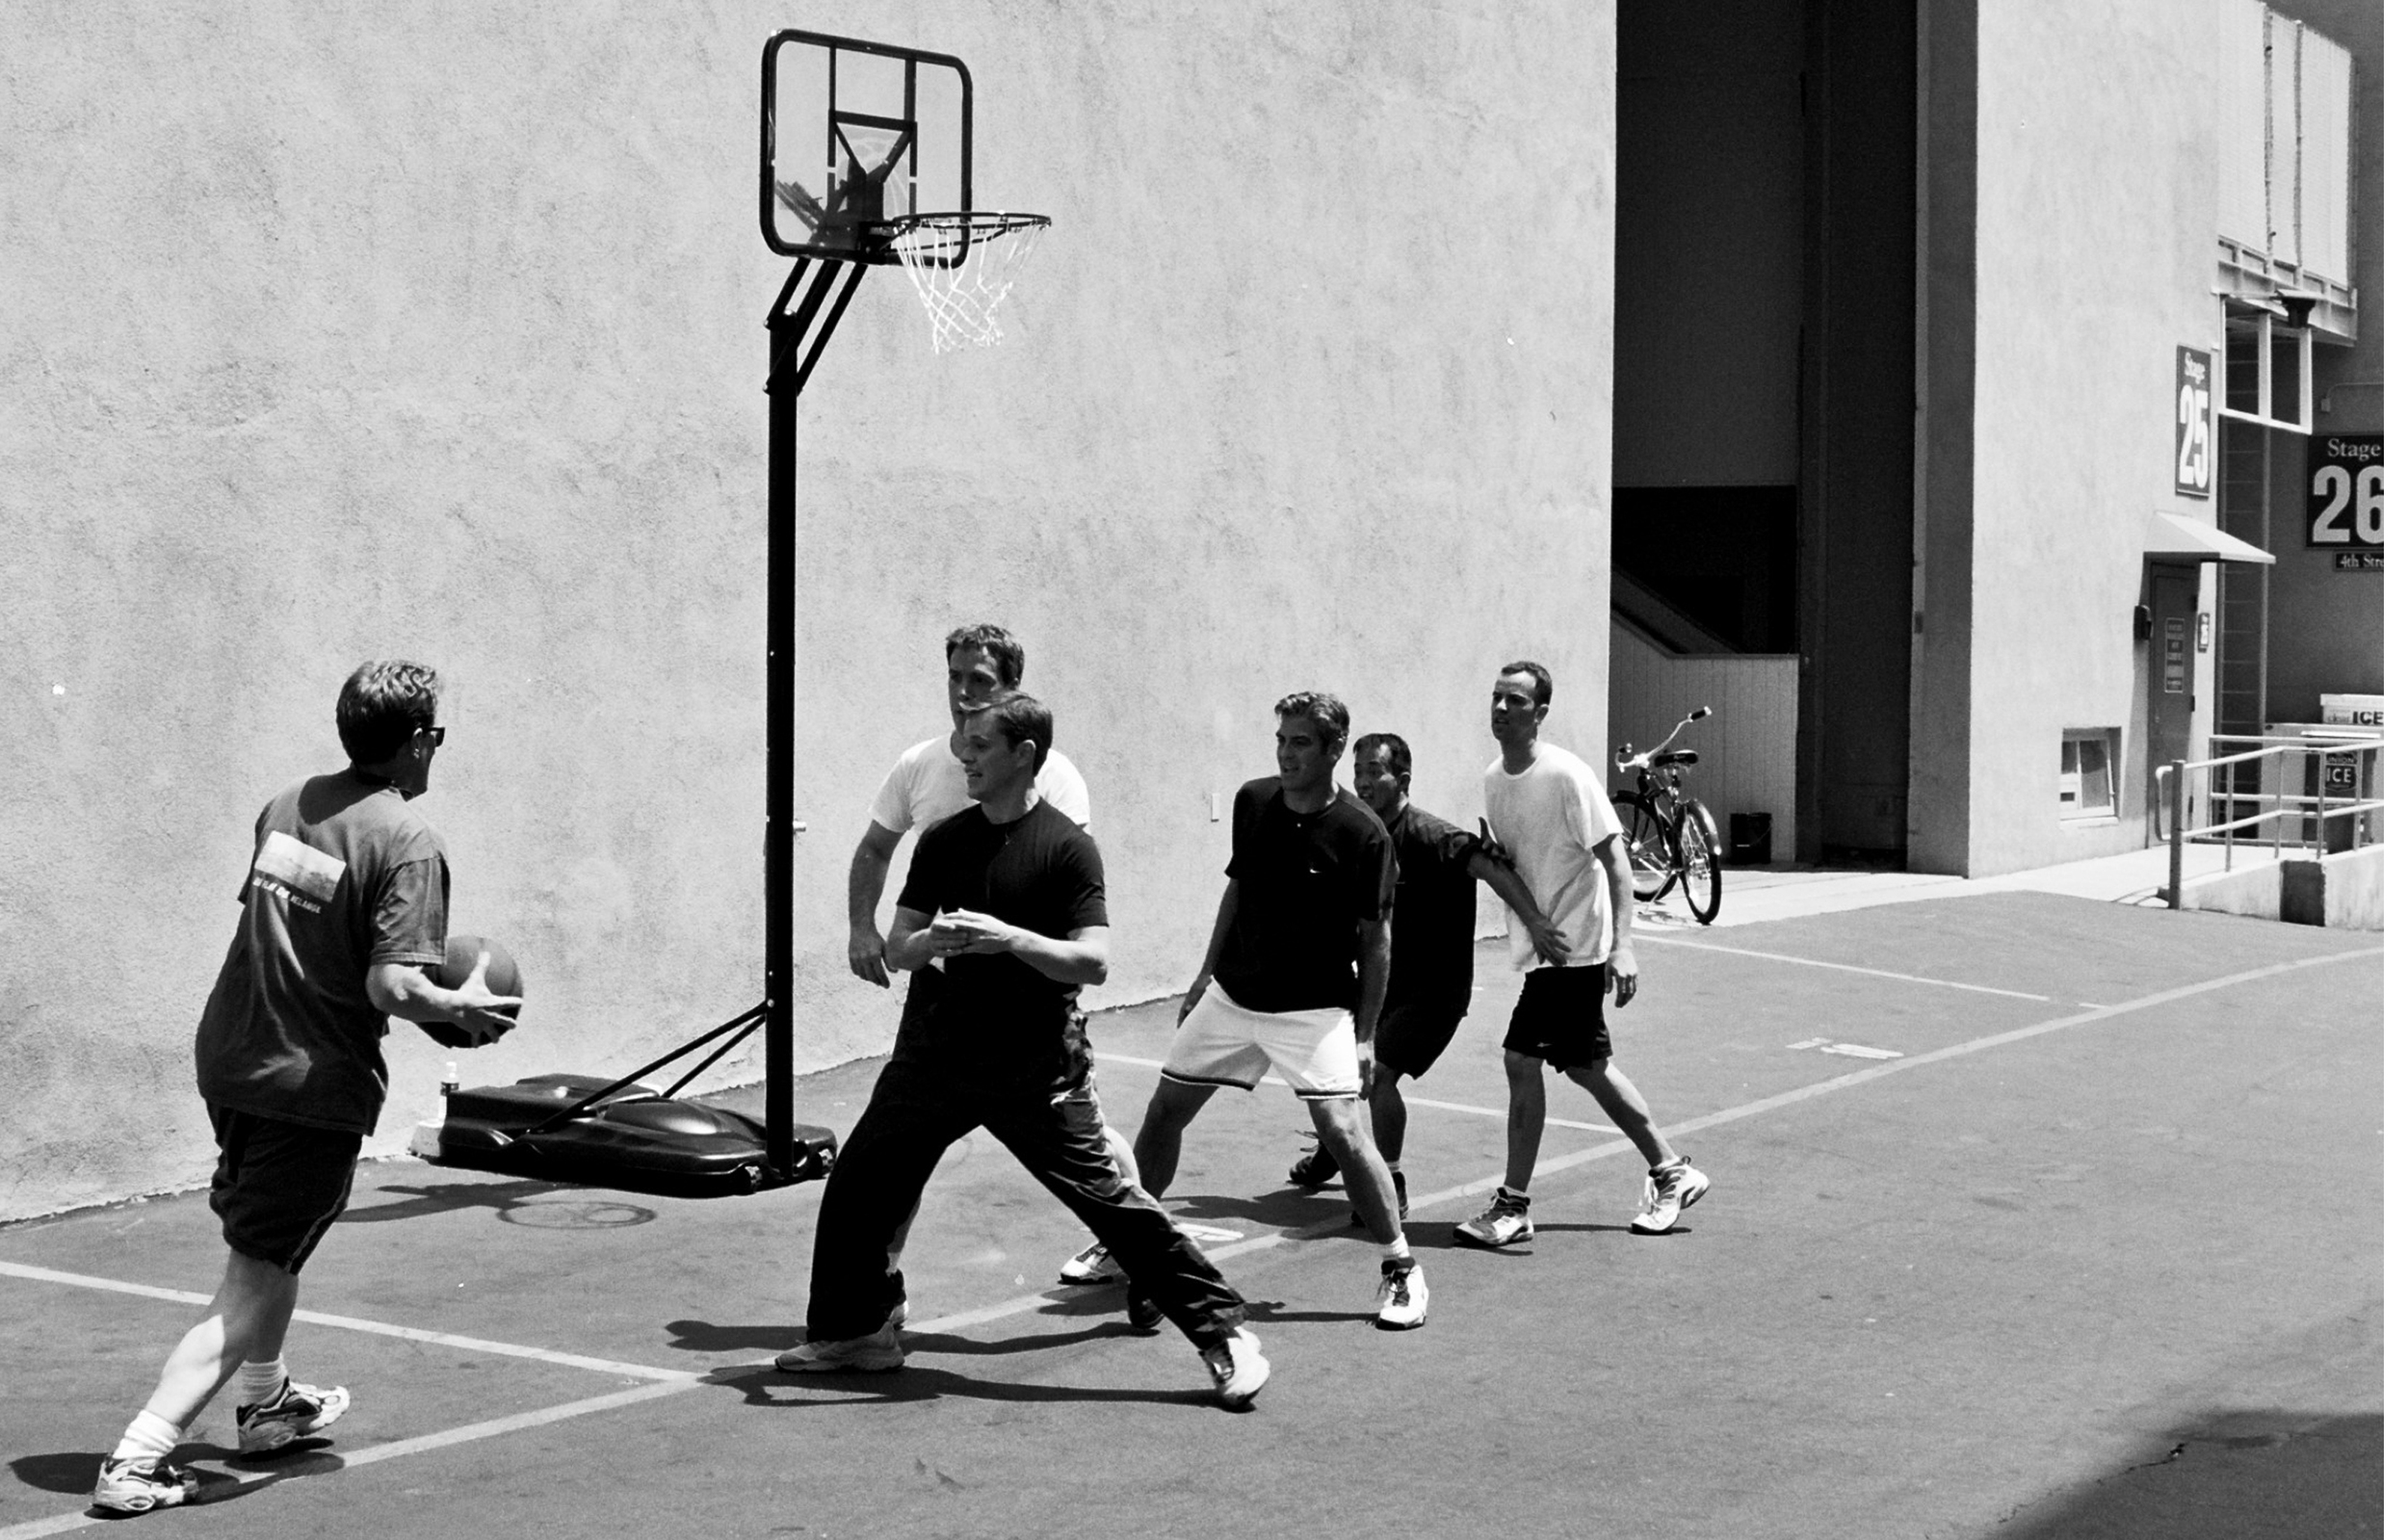 Basketball game, Matt Damon, George Clooney, Los Angeles, CA